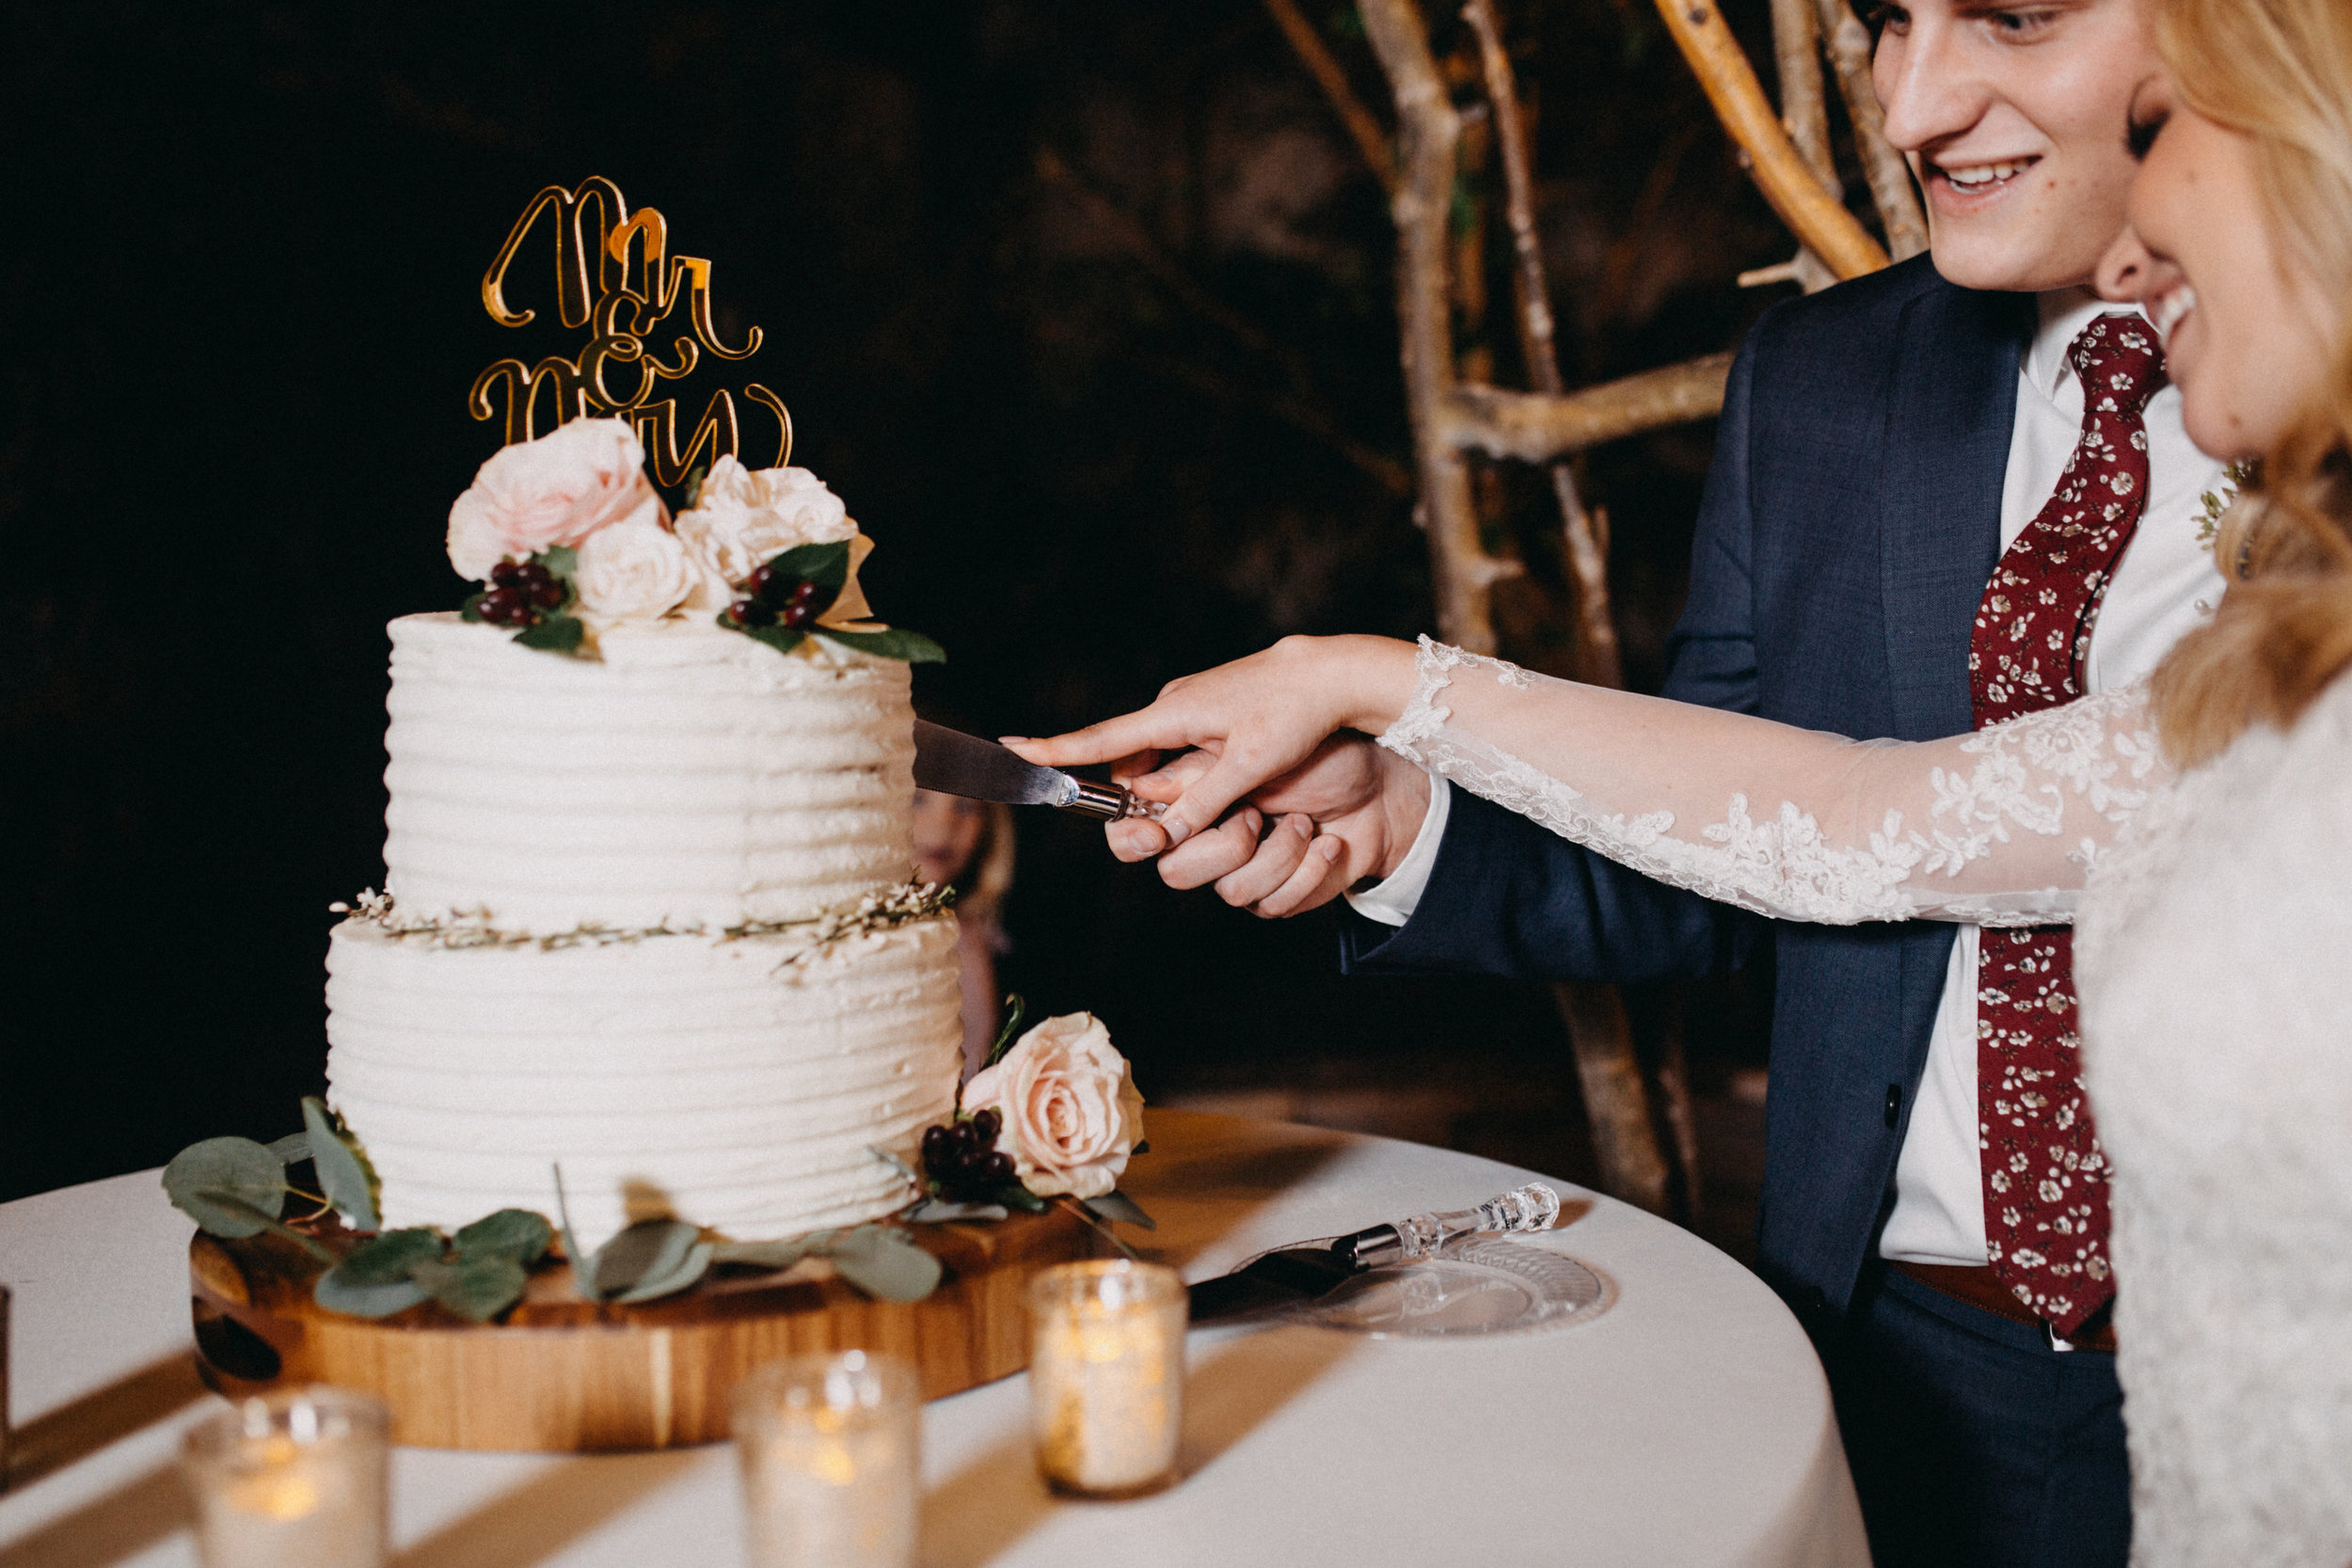 Professional Wedding Photographer in Brigham City Utah Wedding Reception Cutting Wedding Cake Vintage Wedding